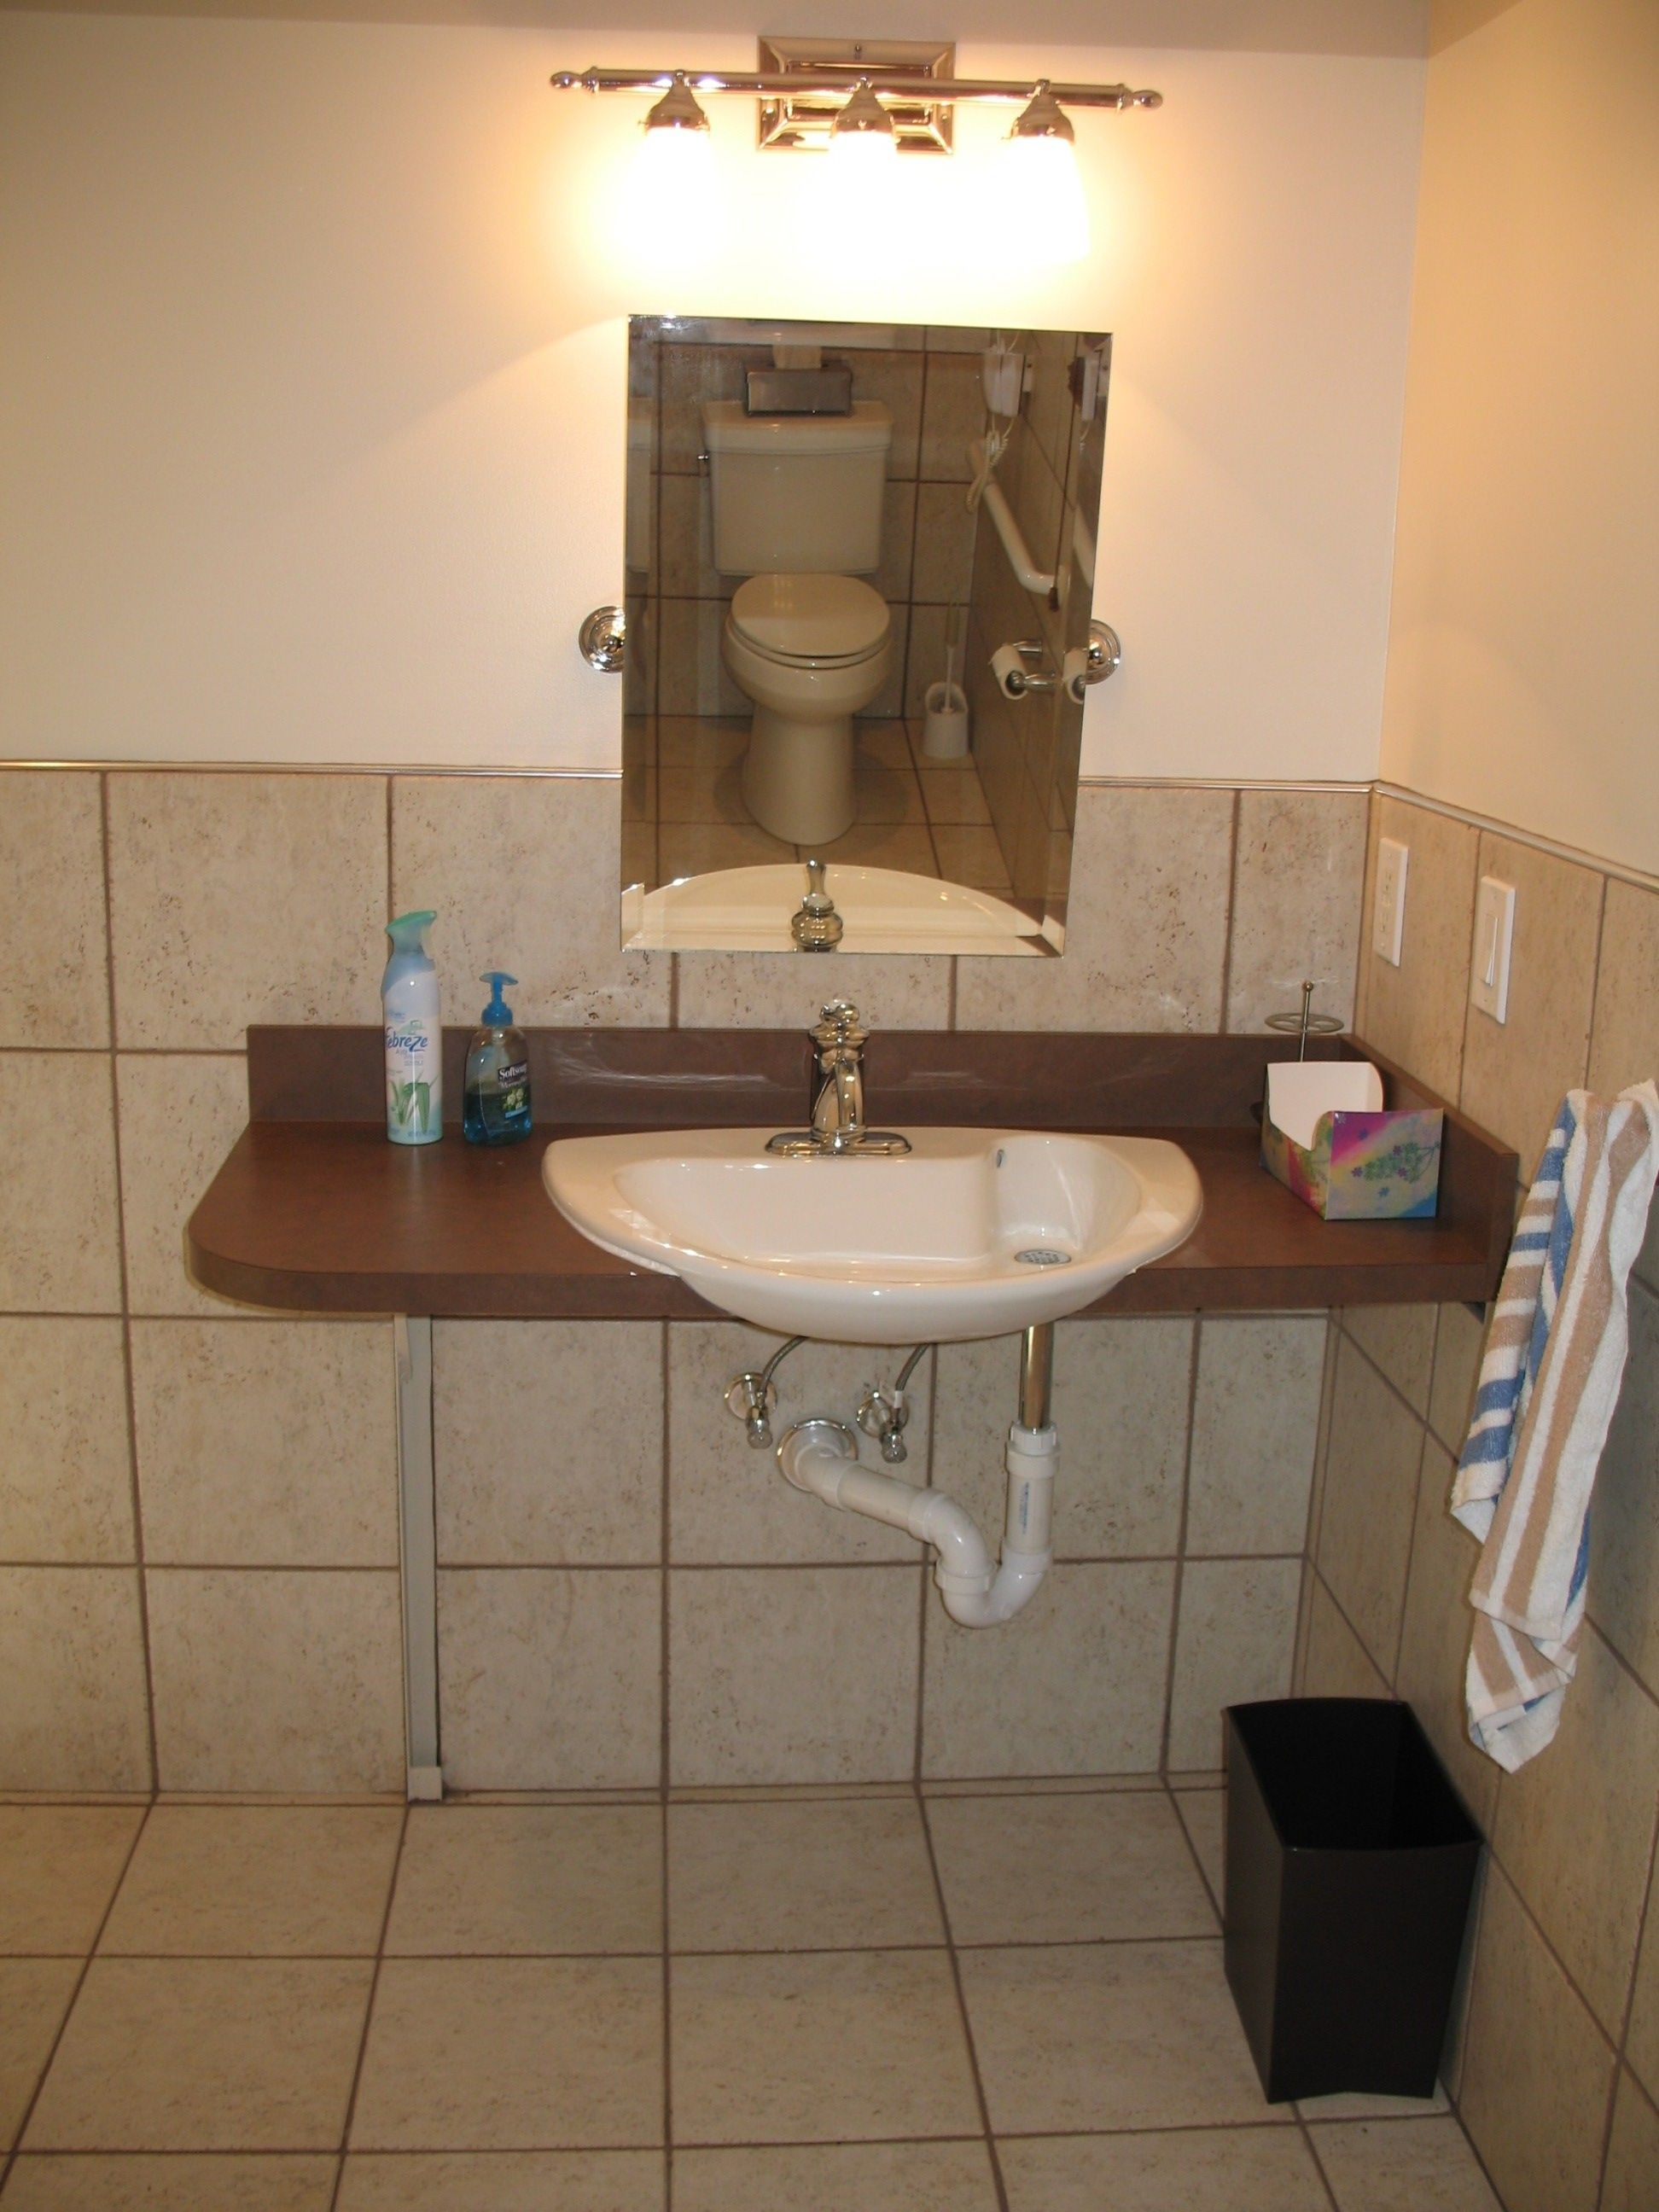 Universal Design Bathroom Sink DisabledBathrooms See More At - Disabled bathroom fixtures